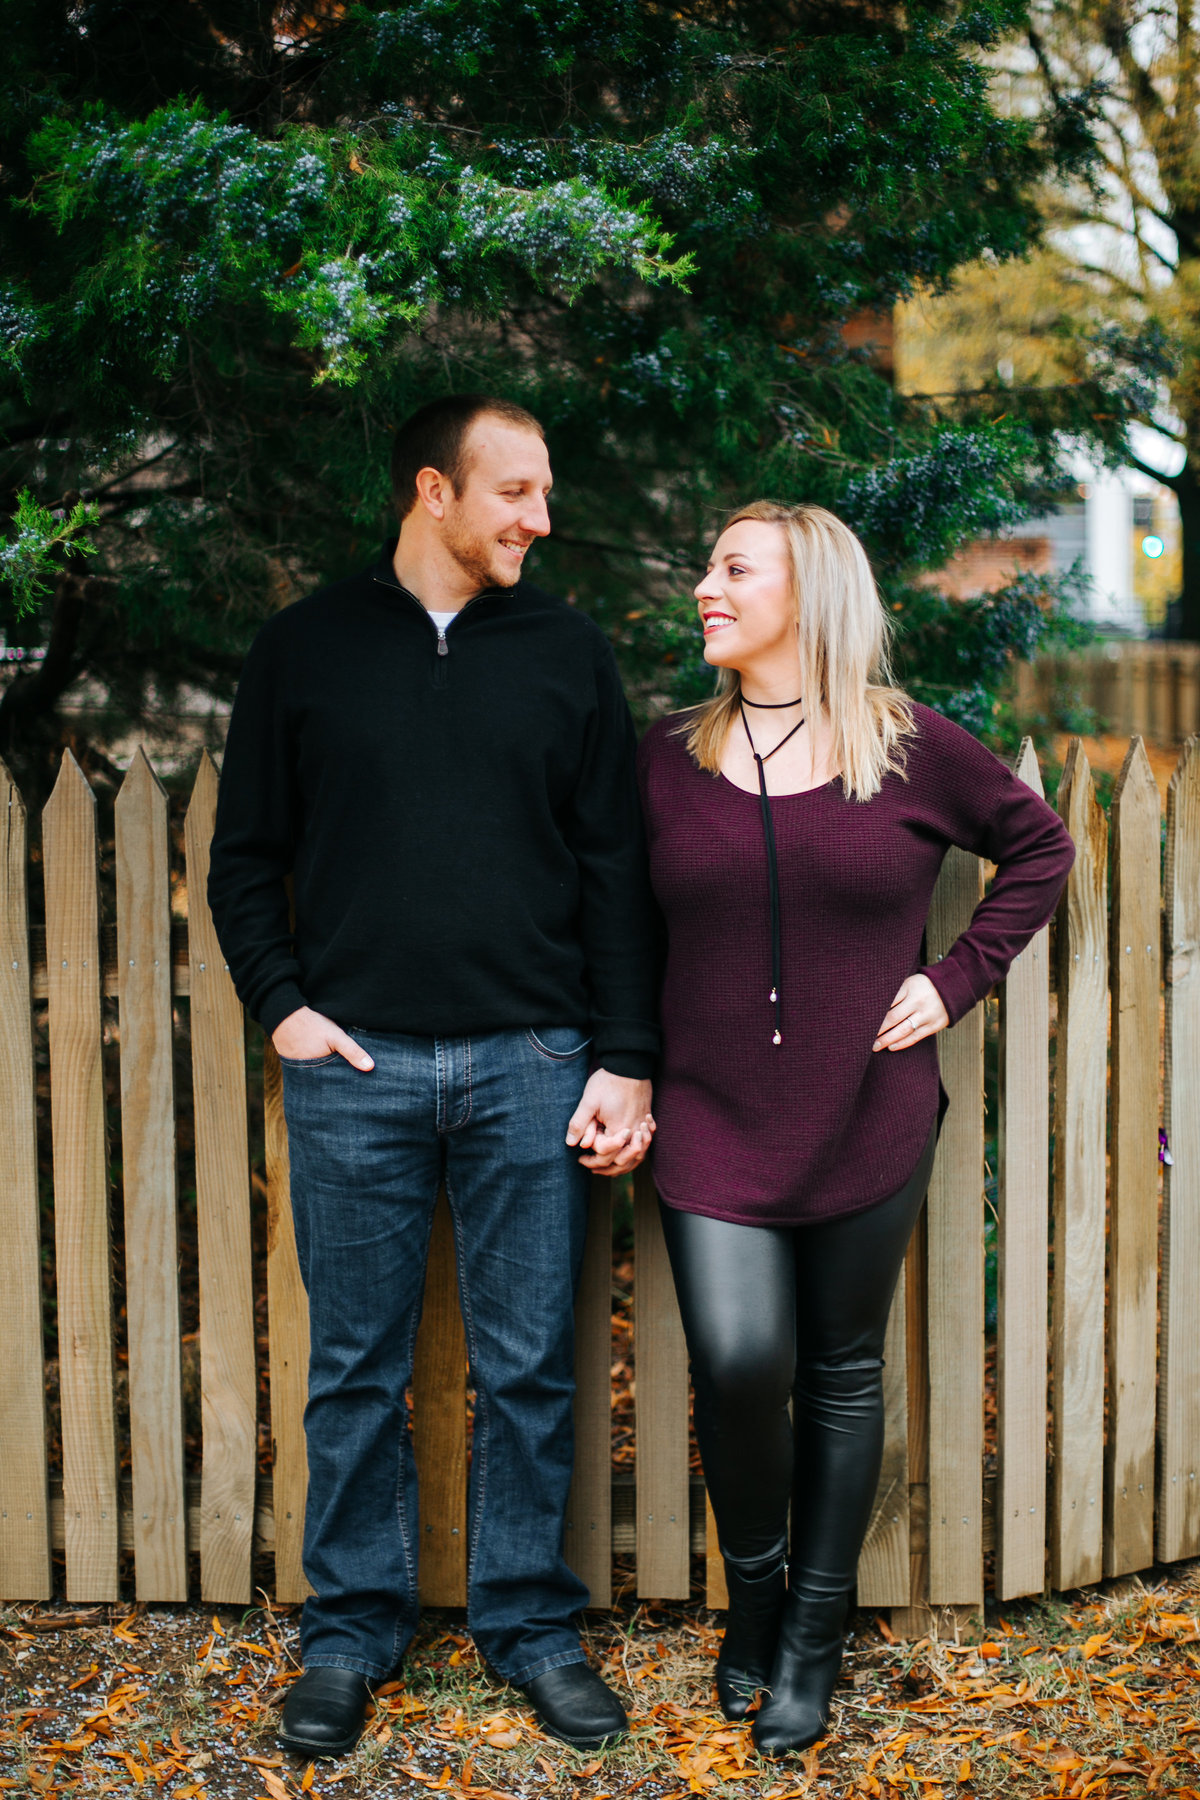 BaileyMunford-Engagements-35